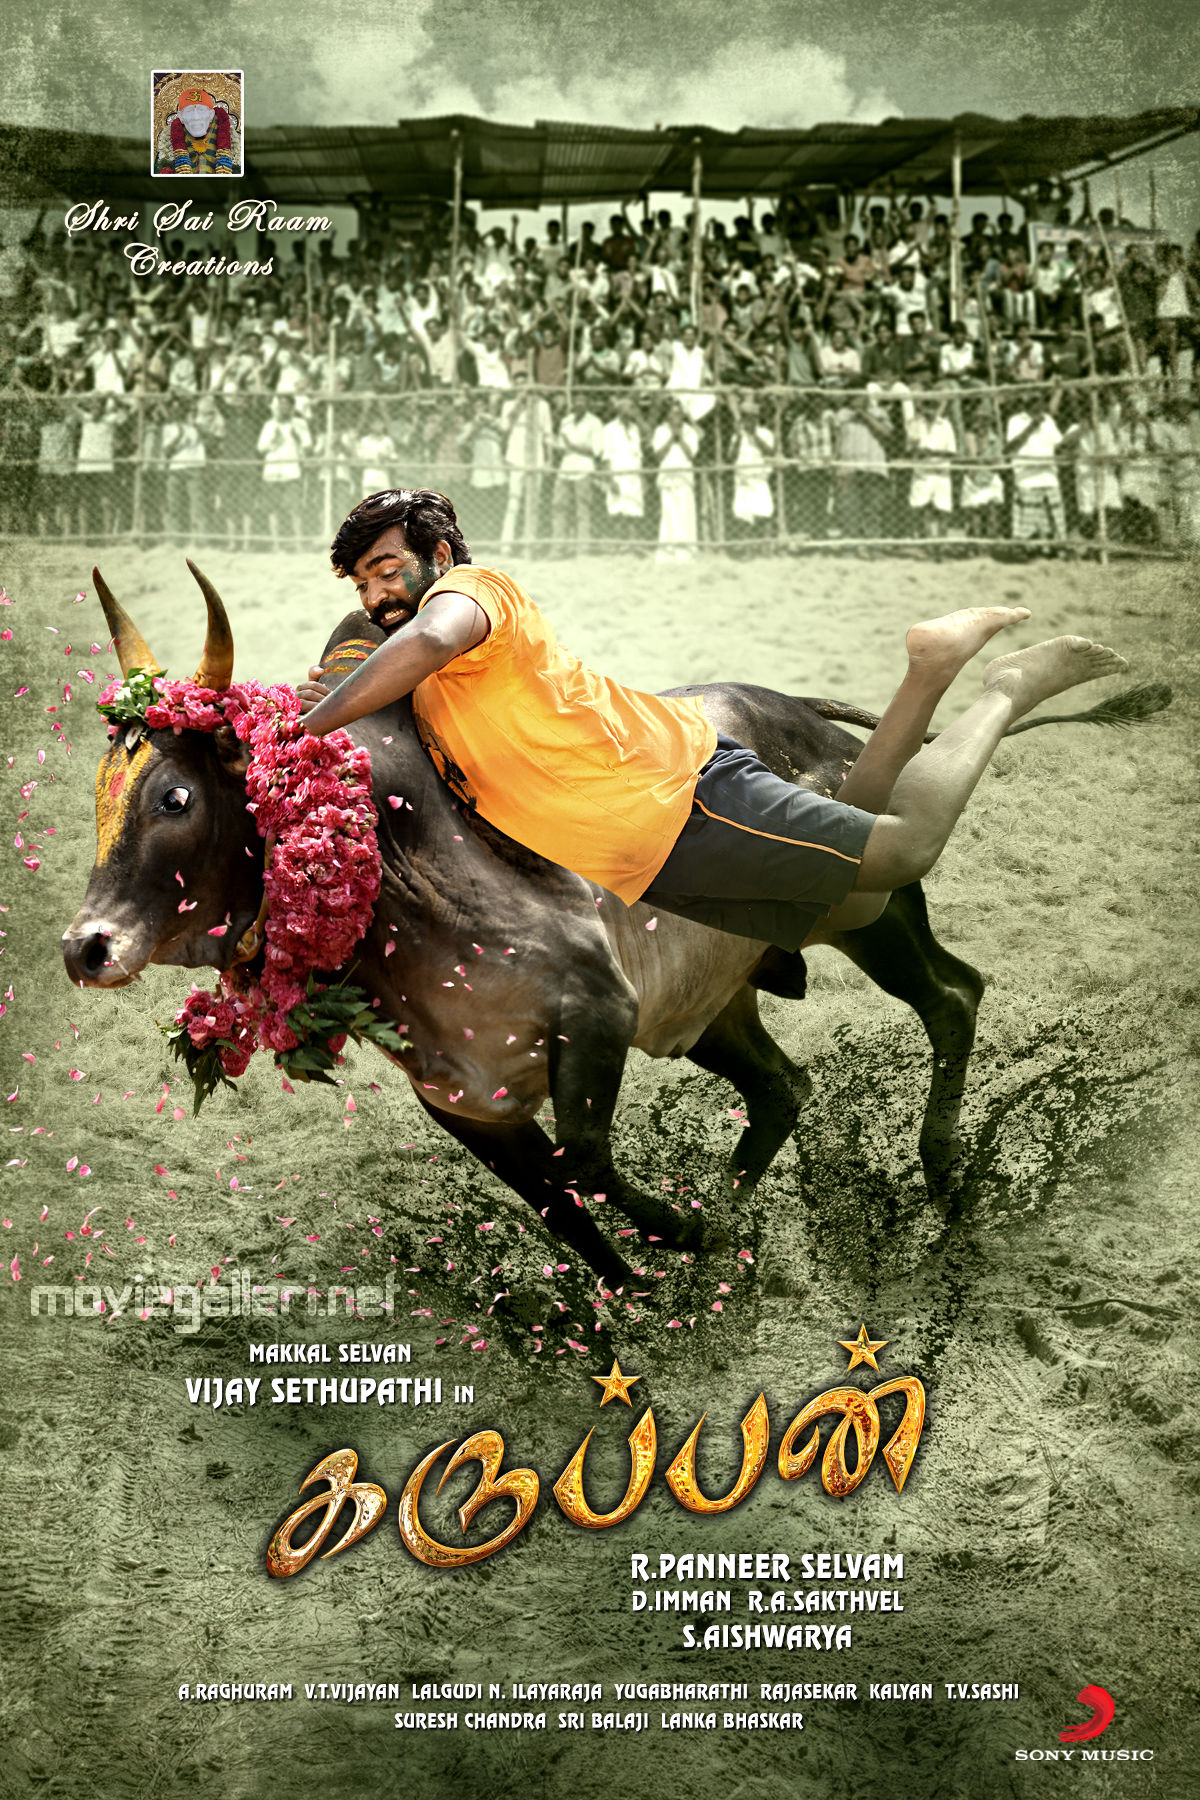 Vijay Sethupathi's Karuppan Movie First Look Poster